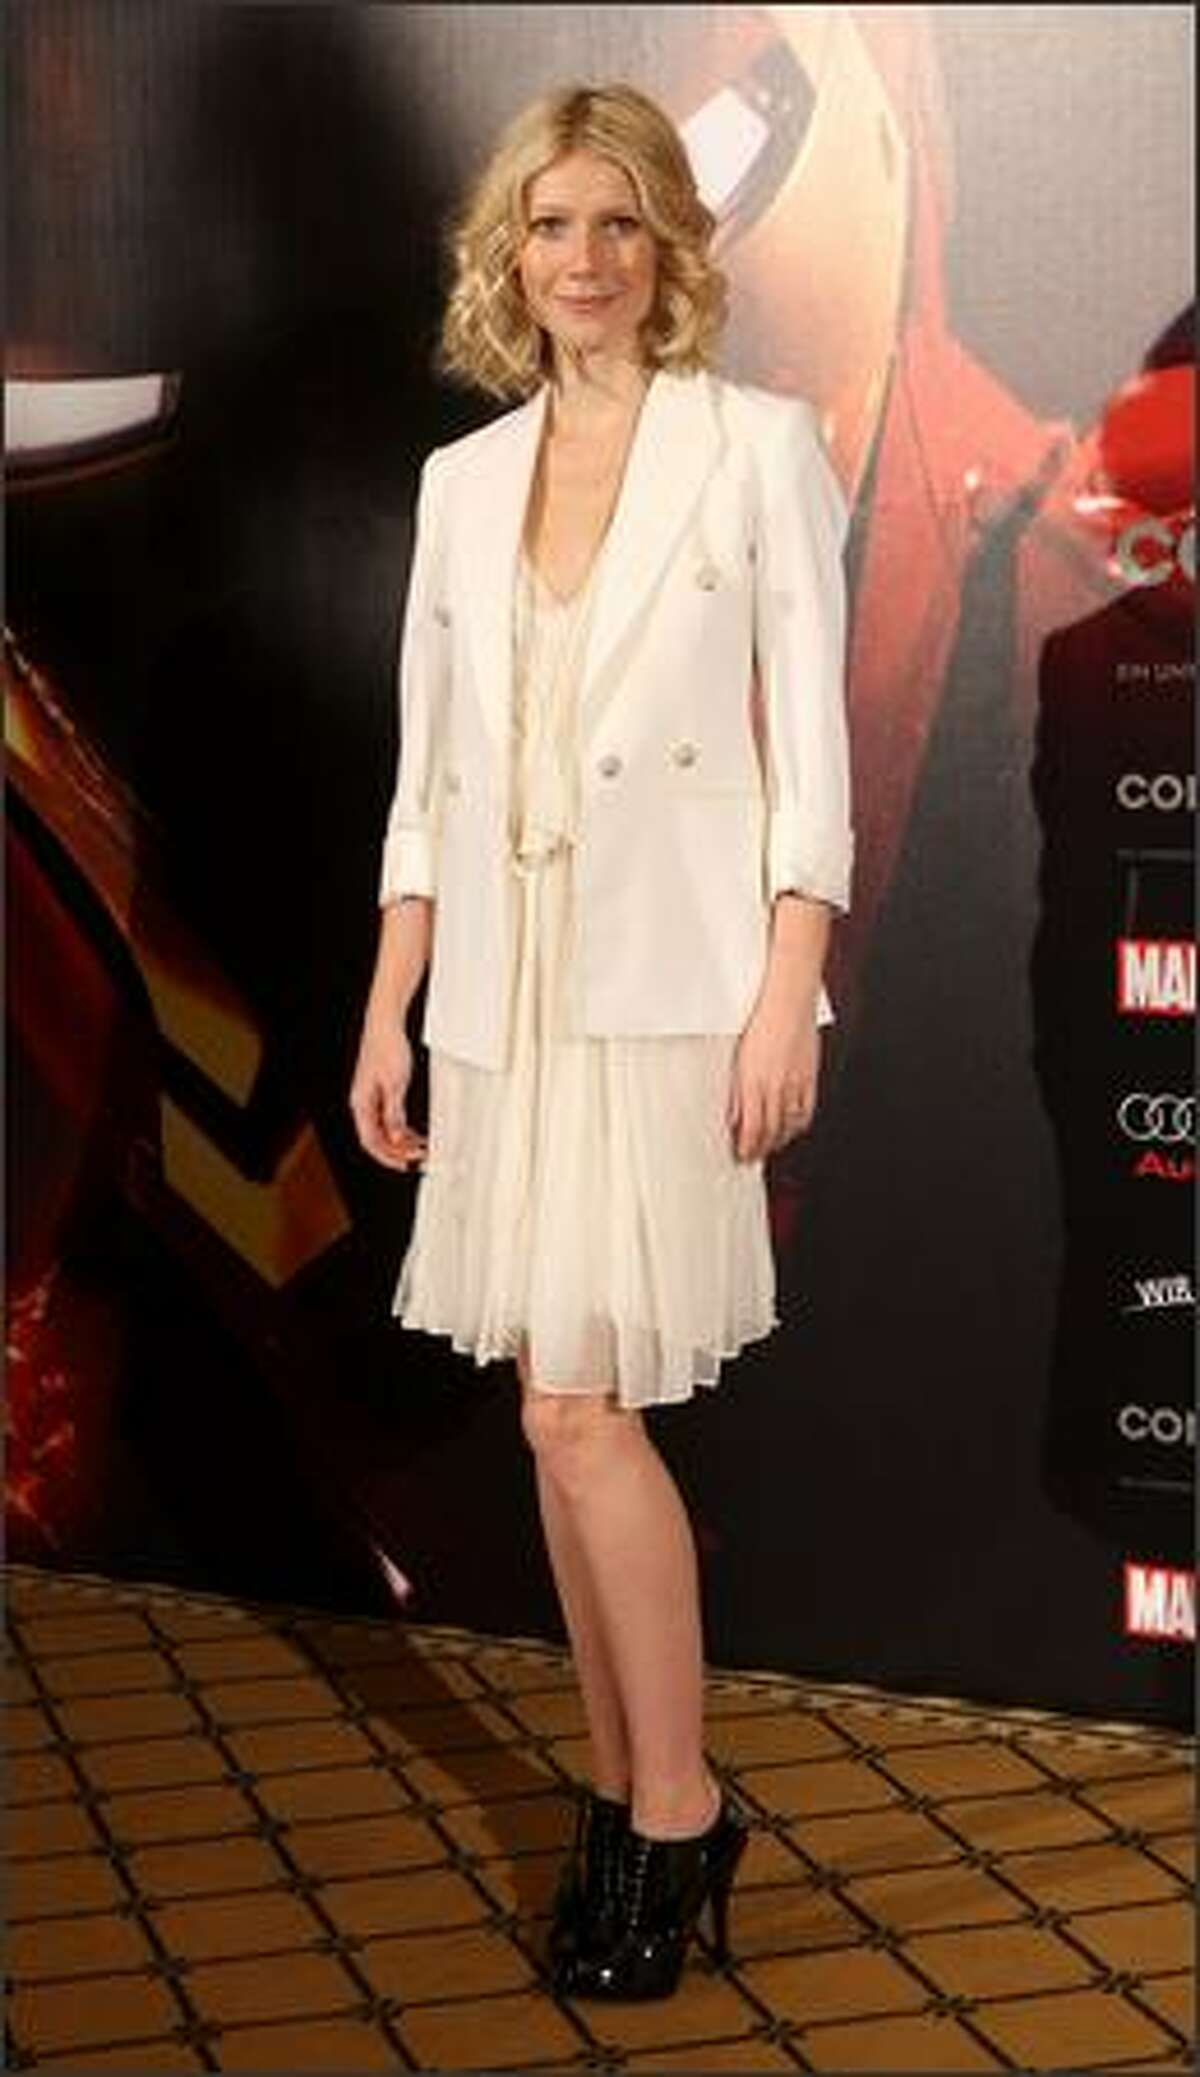 April 22, 2008: Gwyneth Paltrow wears an outfit by Stella McCartney as she attends a photocall to promote the movie